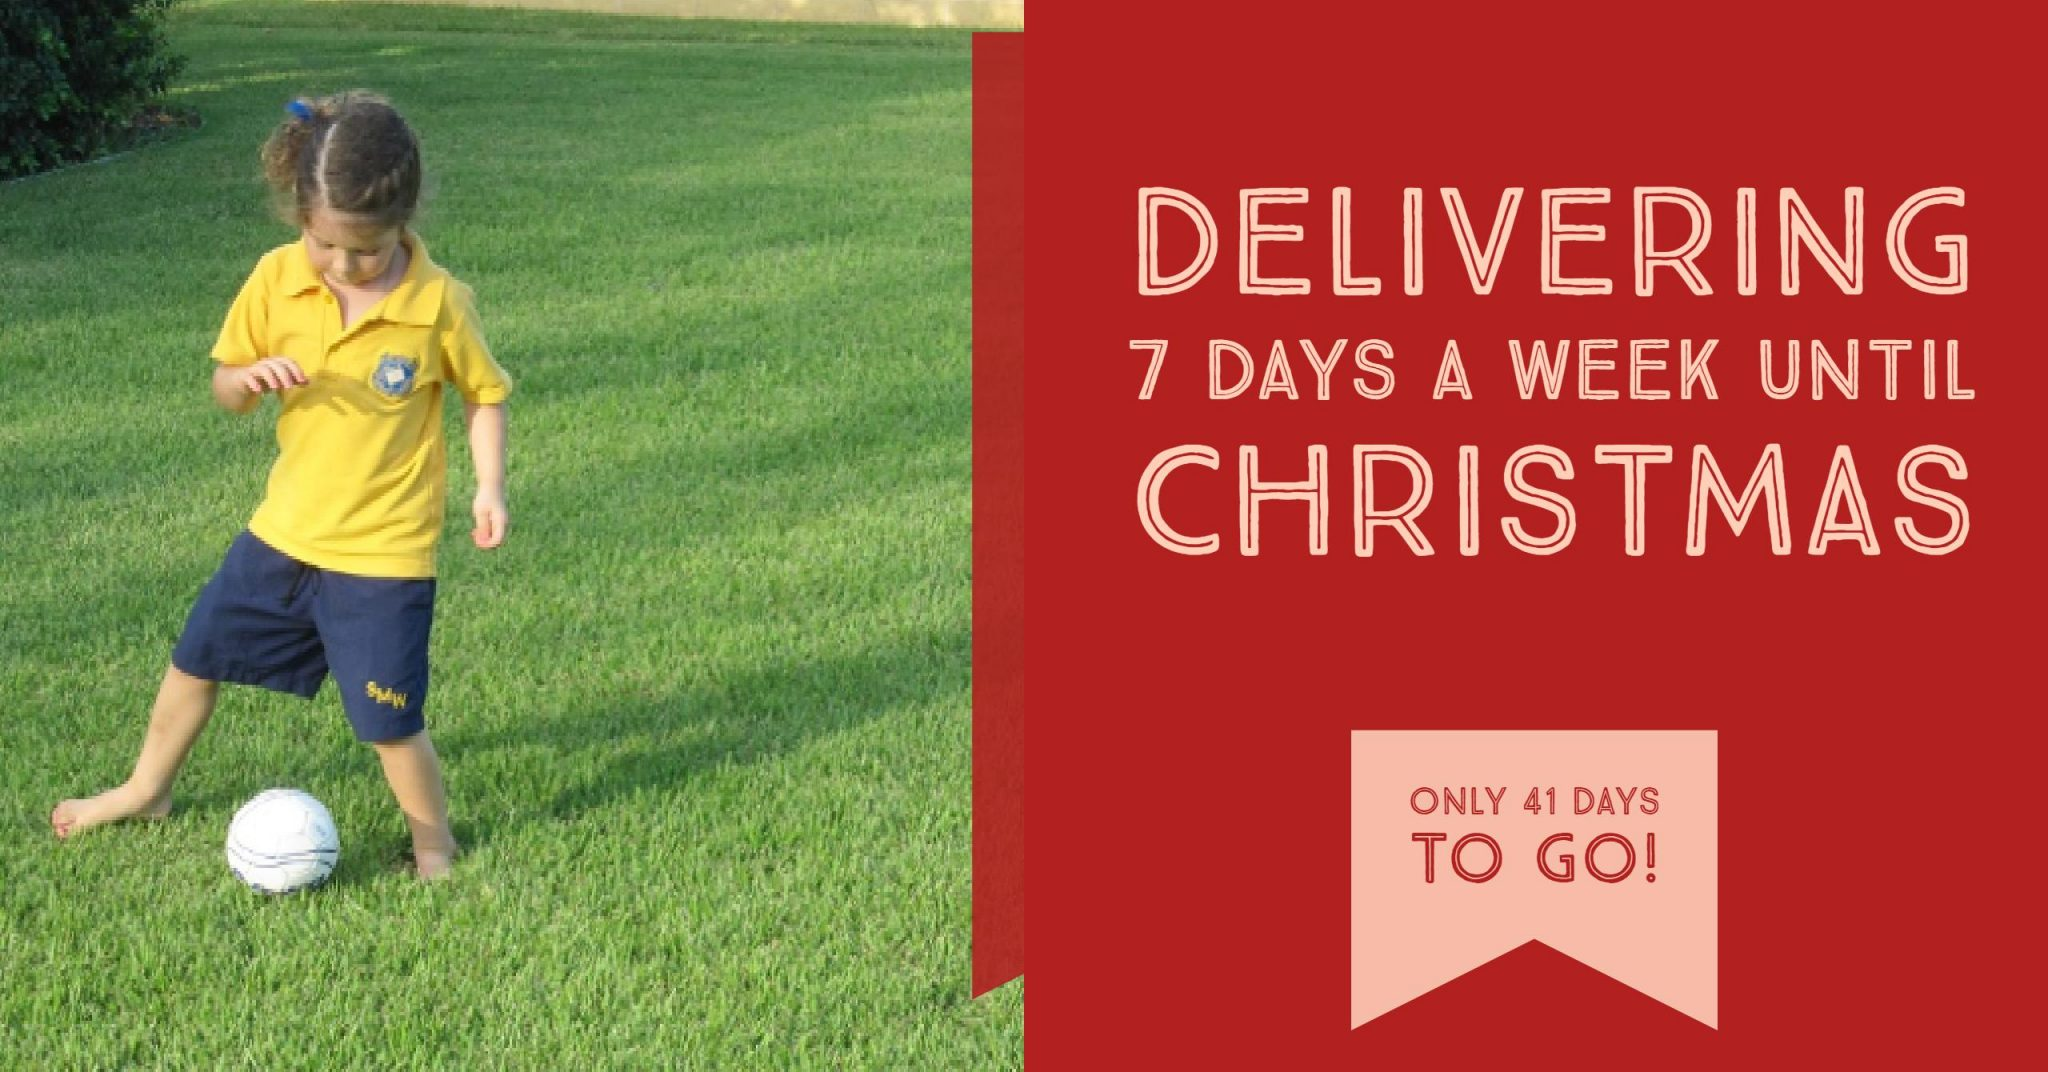 glenview turf is delivering 7 days a week until christmas